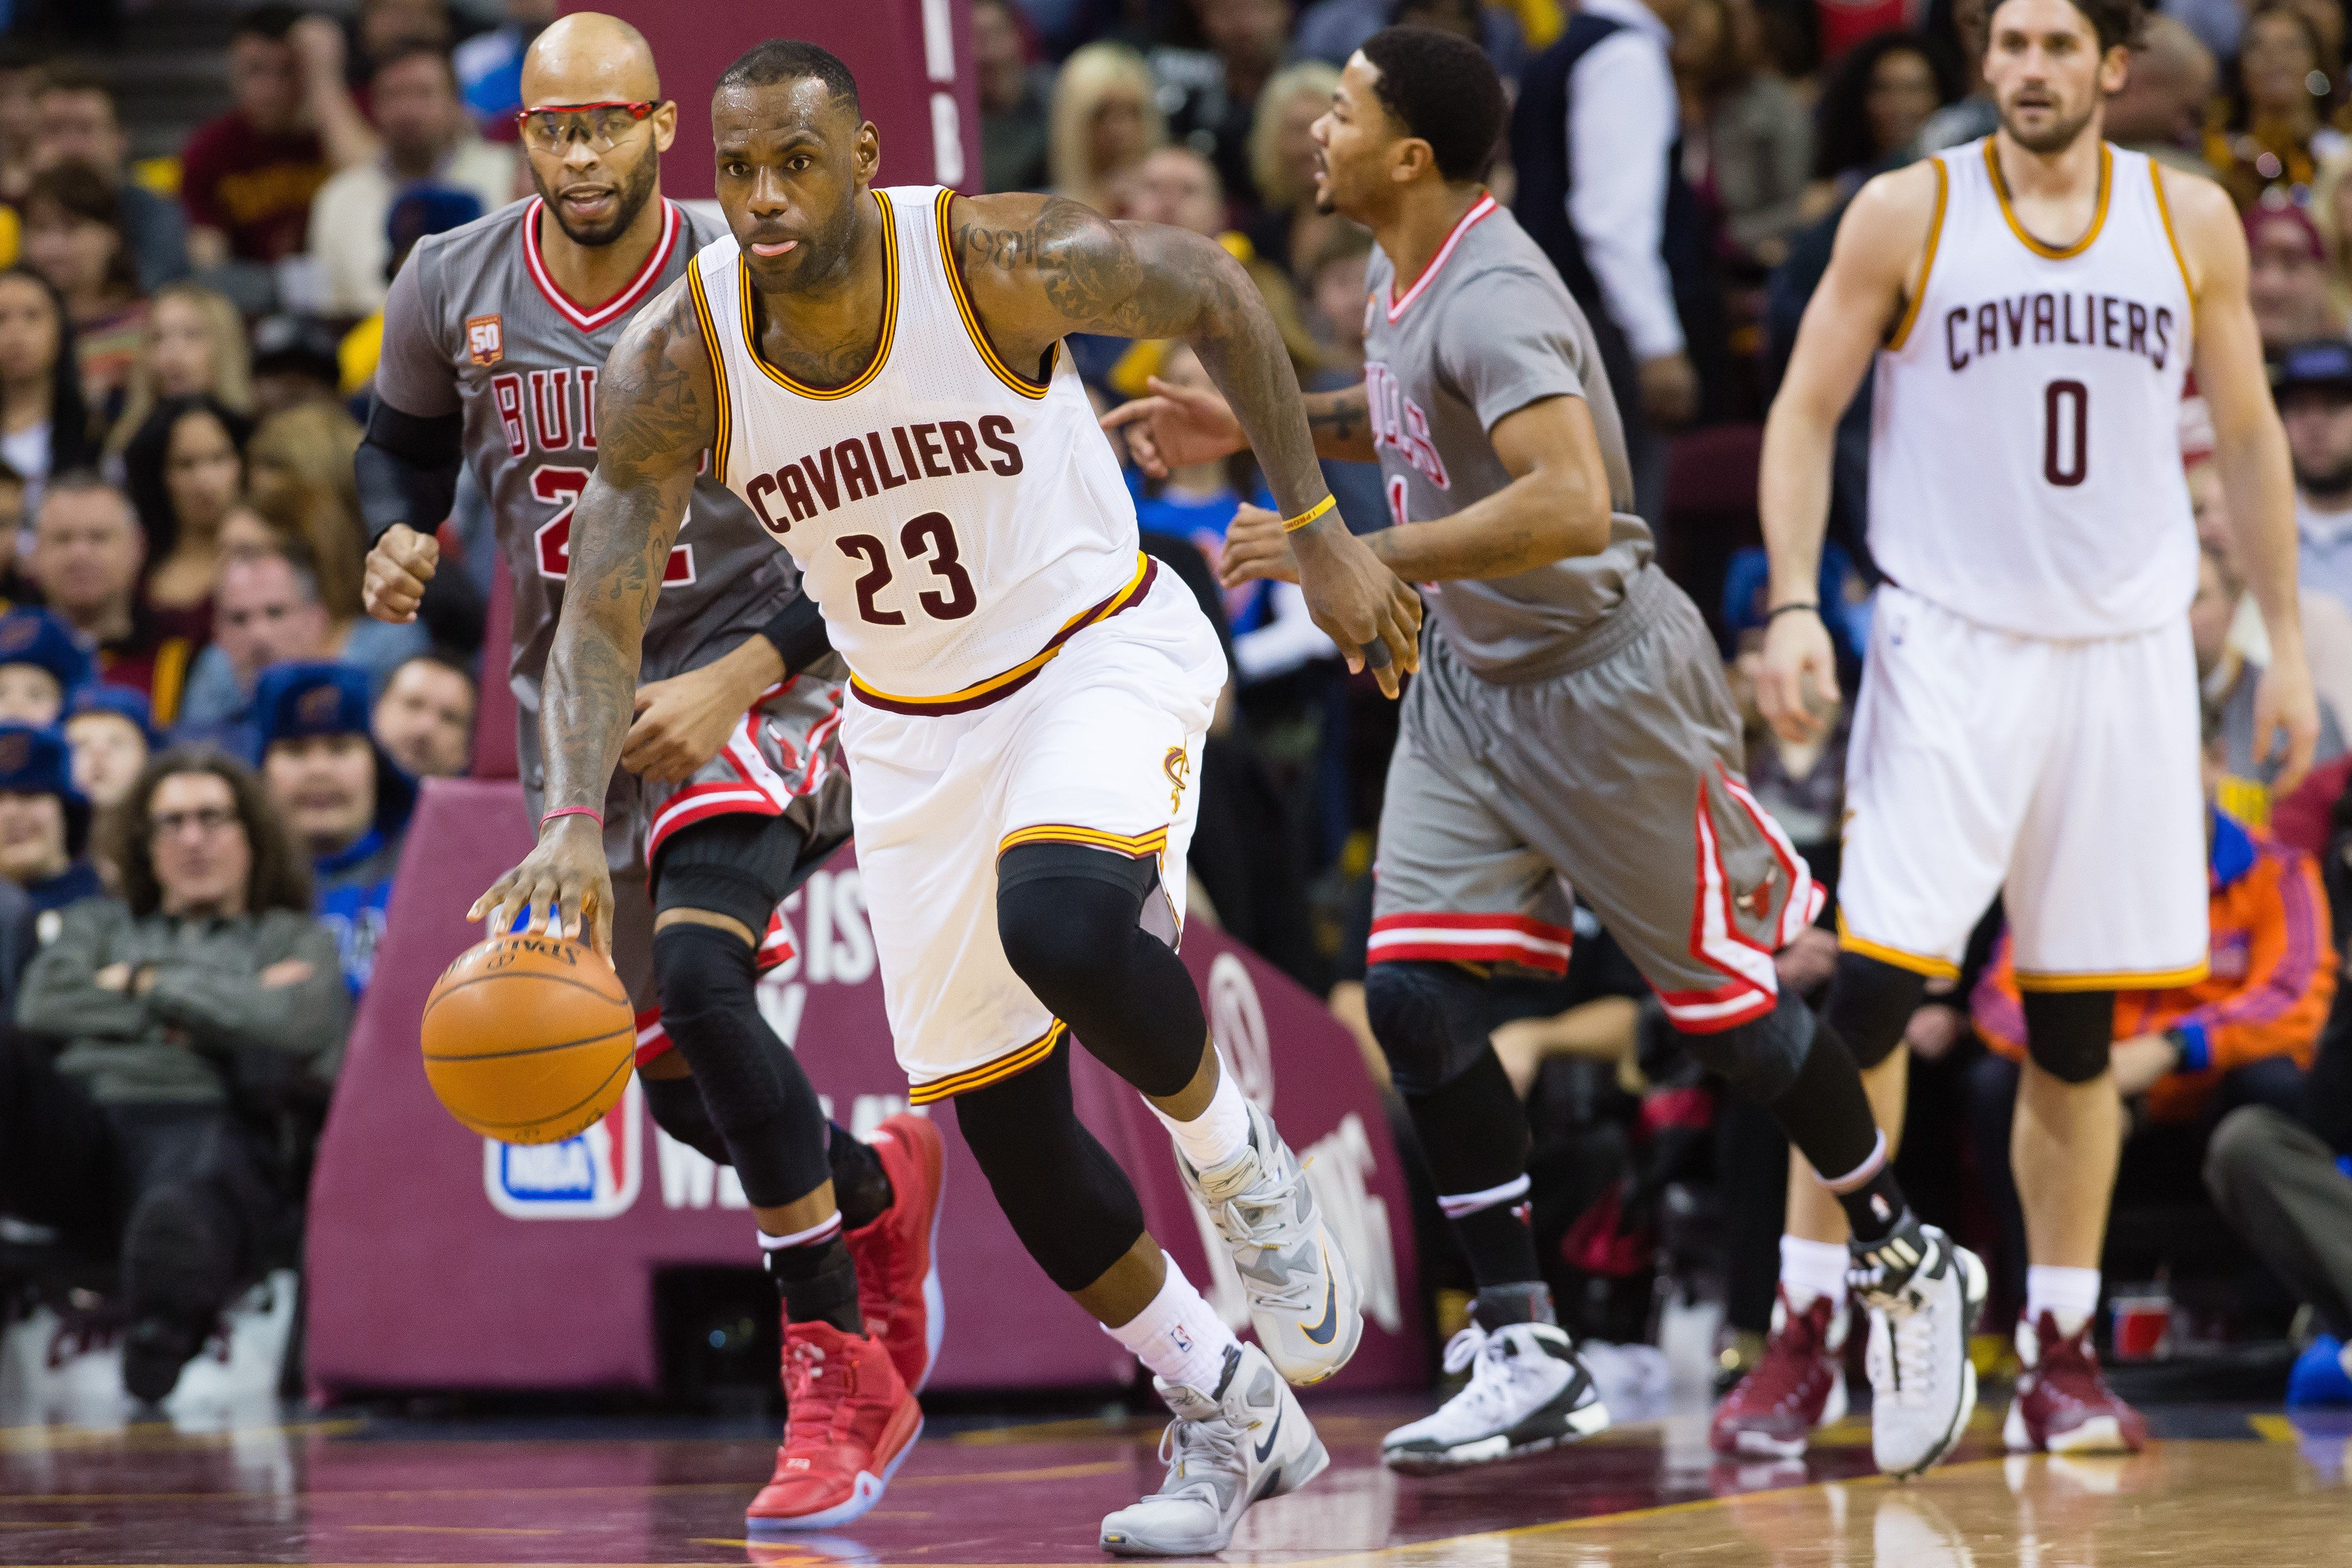 CLEVELAND, OH - JANUARY 23: LeBron James #23 of the Cleveland Cavaliers drives down court after a rebound against the Chicago Bulls during the second half at Quicken Loans Arena on January 23, 2016 in Cleveland, Ohio. The Bulls defeated the Cavaliers 96-83. NOTE TO USER: User expressly acknowledges and agrees that, by downloading and/or using this photograph, user is consenting to the terms and conditions of the Getty Images License Agreement. Mandatory copyright notice. (Photo by Jason Miller/Getty Images)